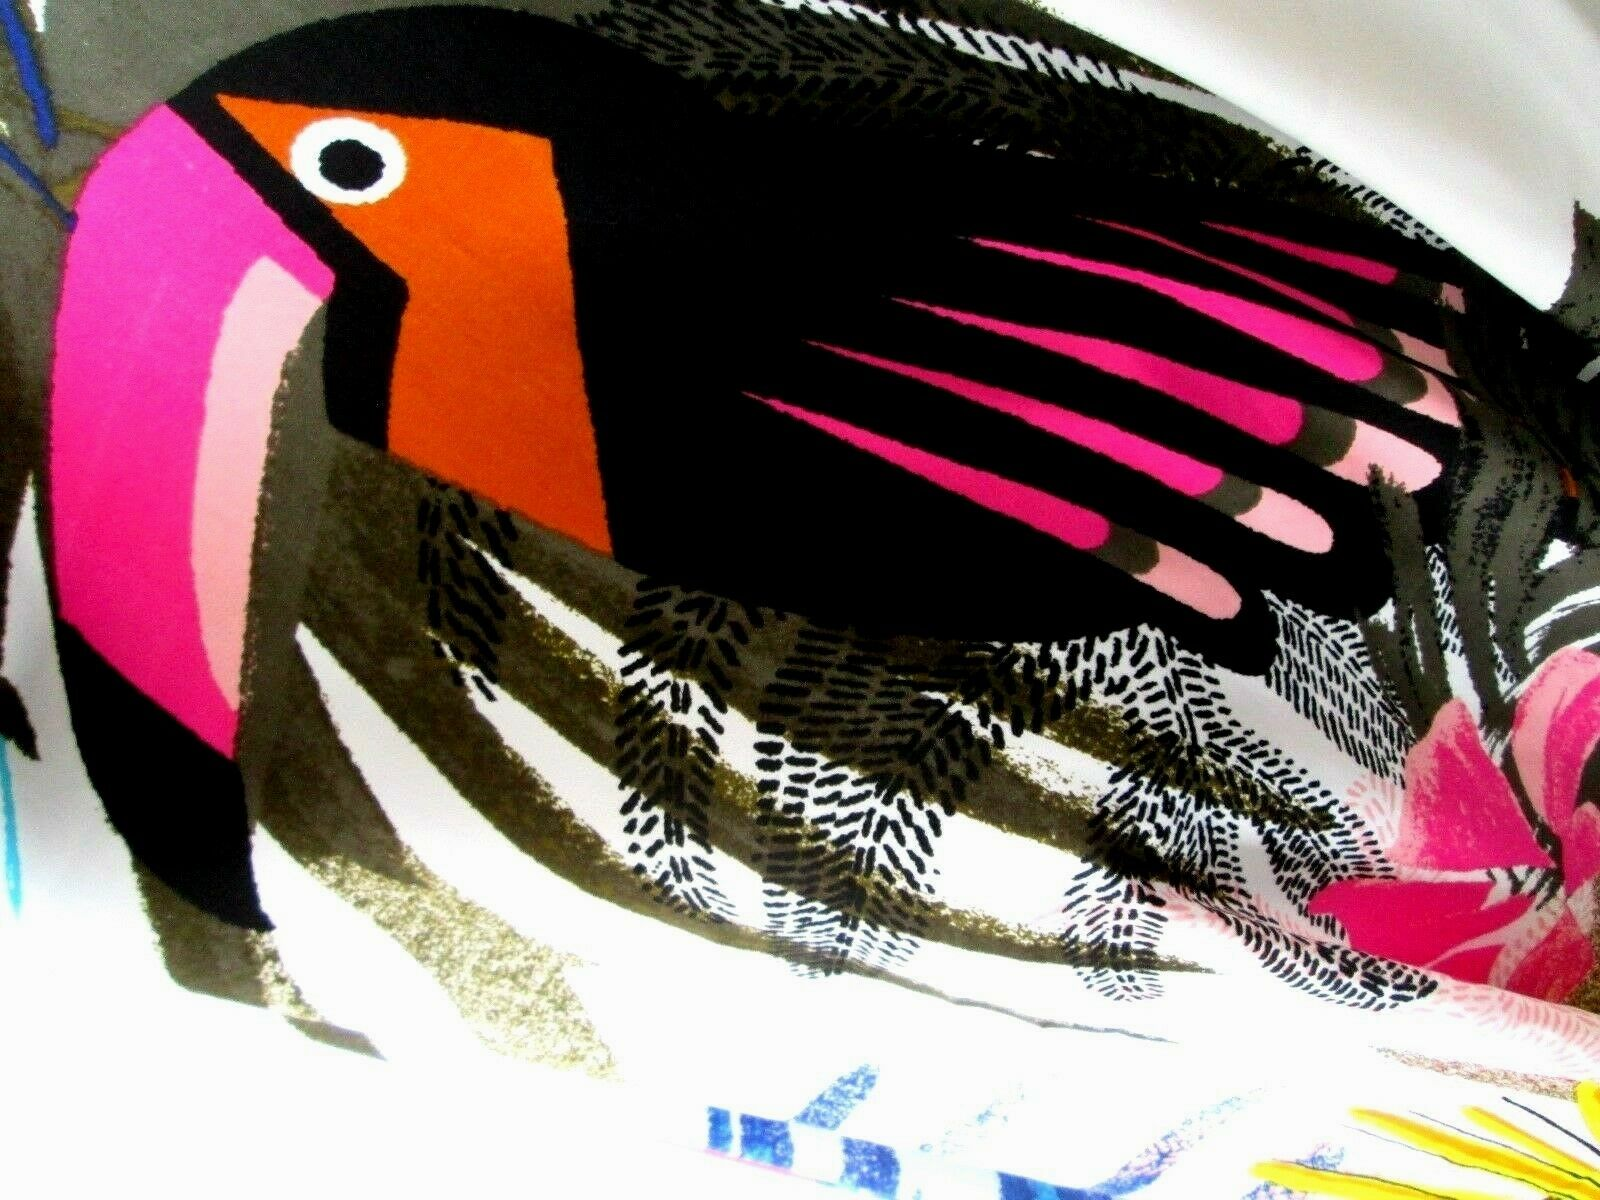 A NEW DAY Multi Colored Scarve W/ Toucan & Four Tassels Ends 38 X 40 SCARVE NWT